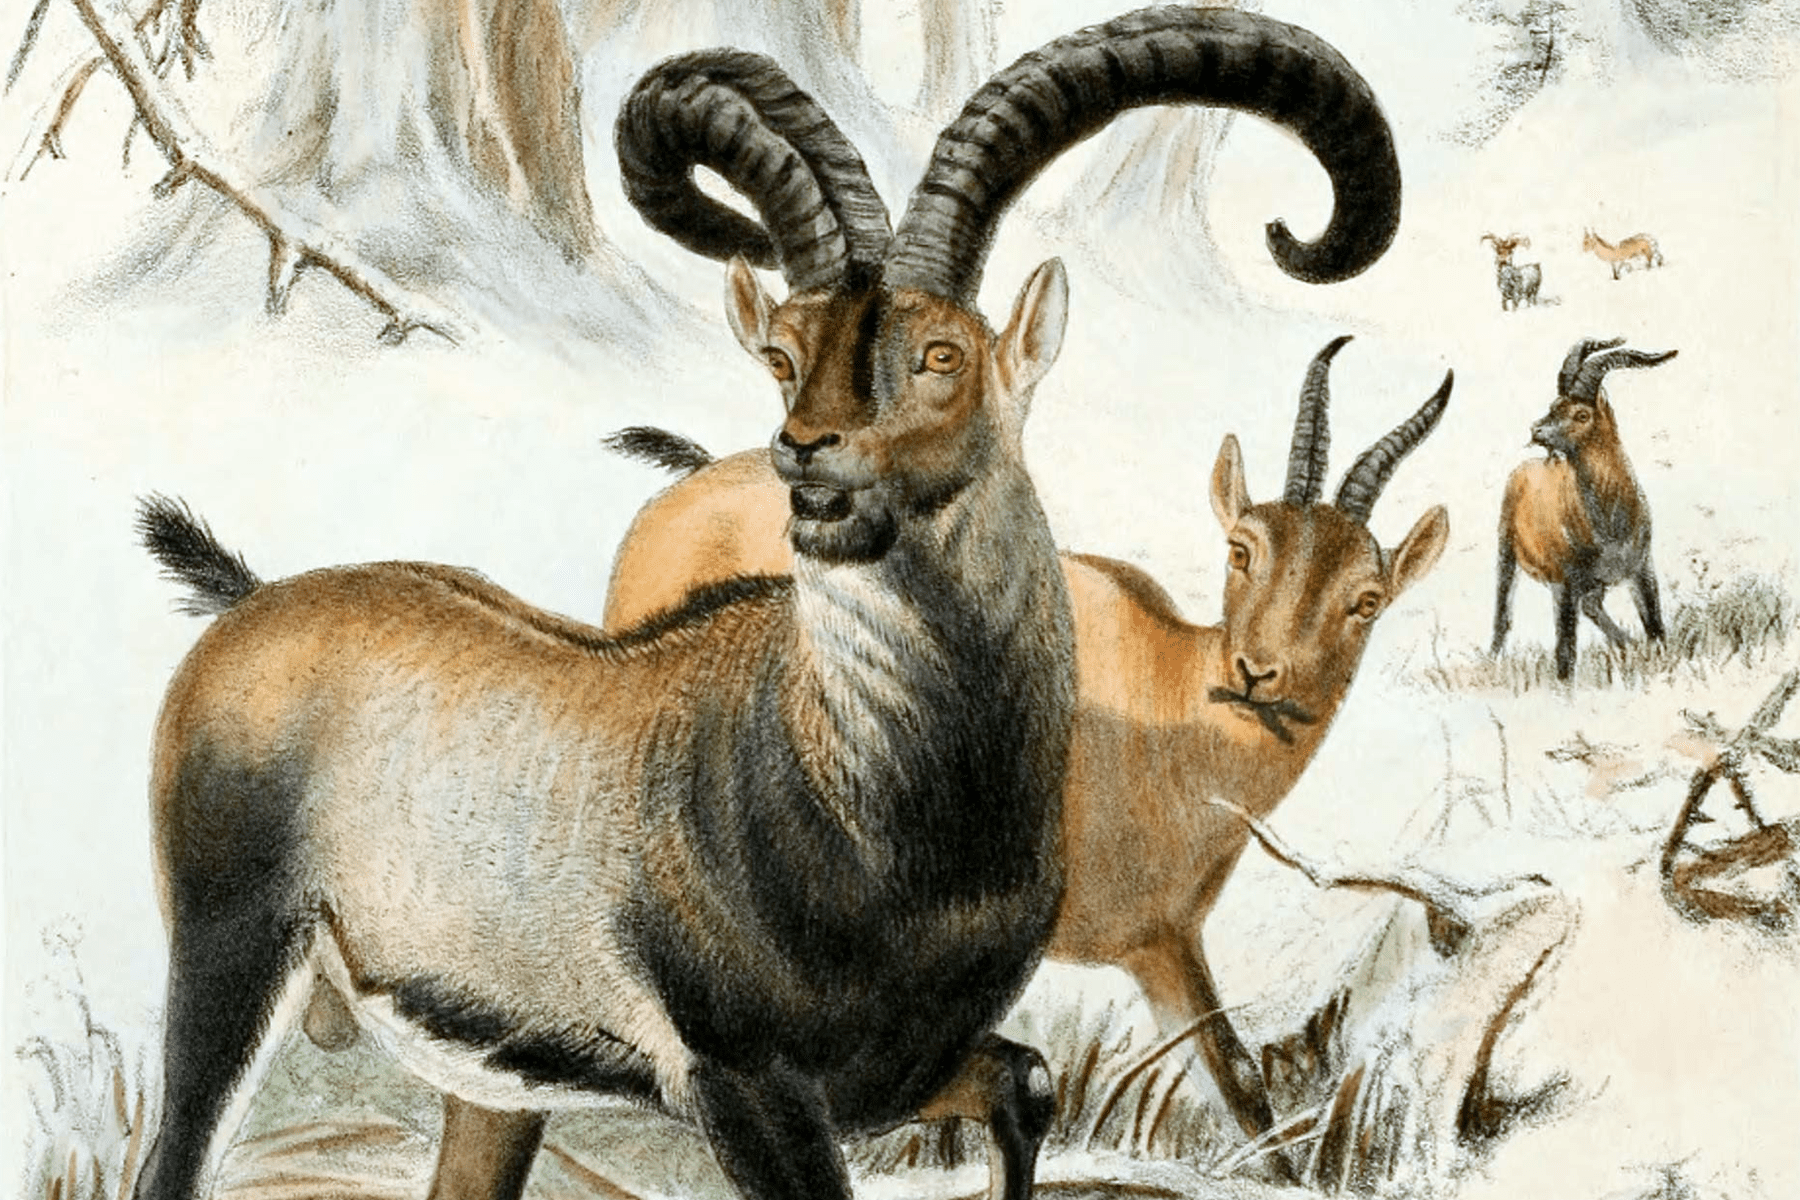 drawing of pyrenean ibex horned antelope like creatures on a snowy background